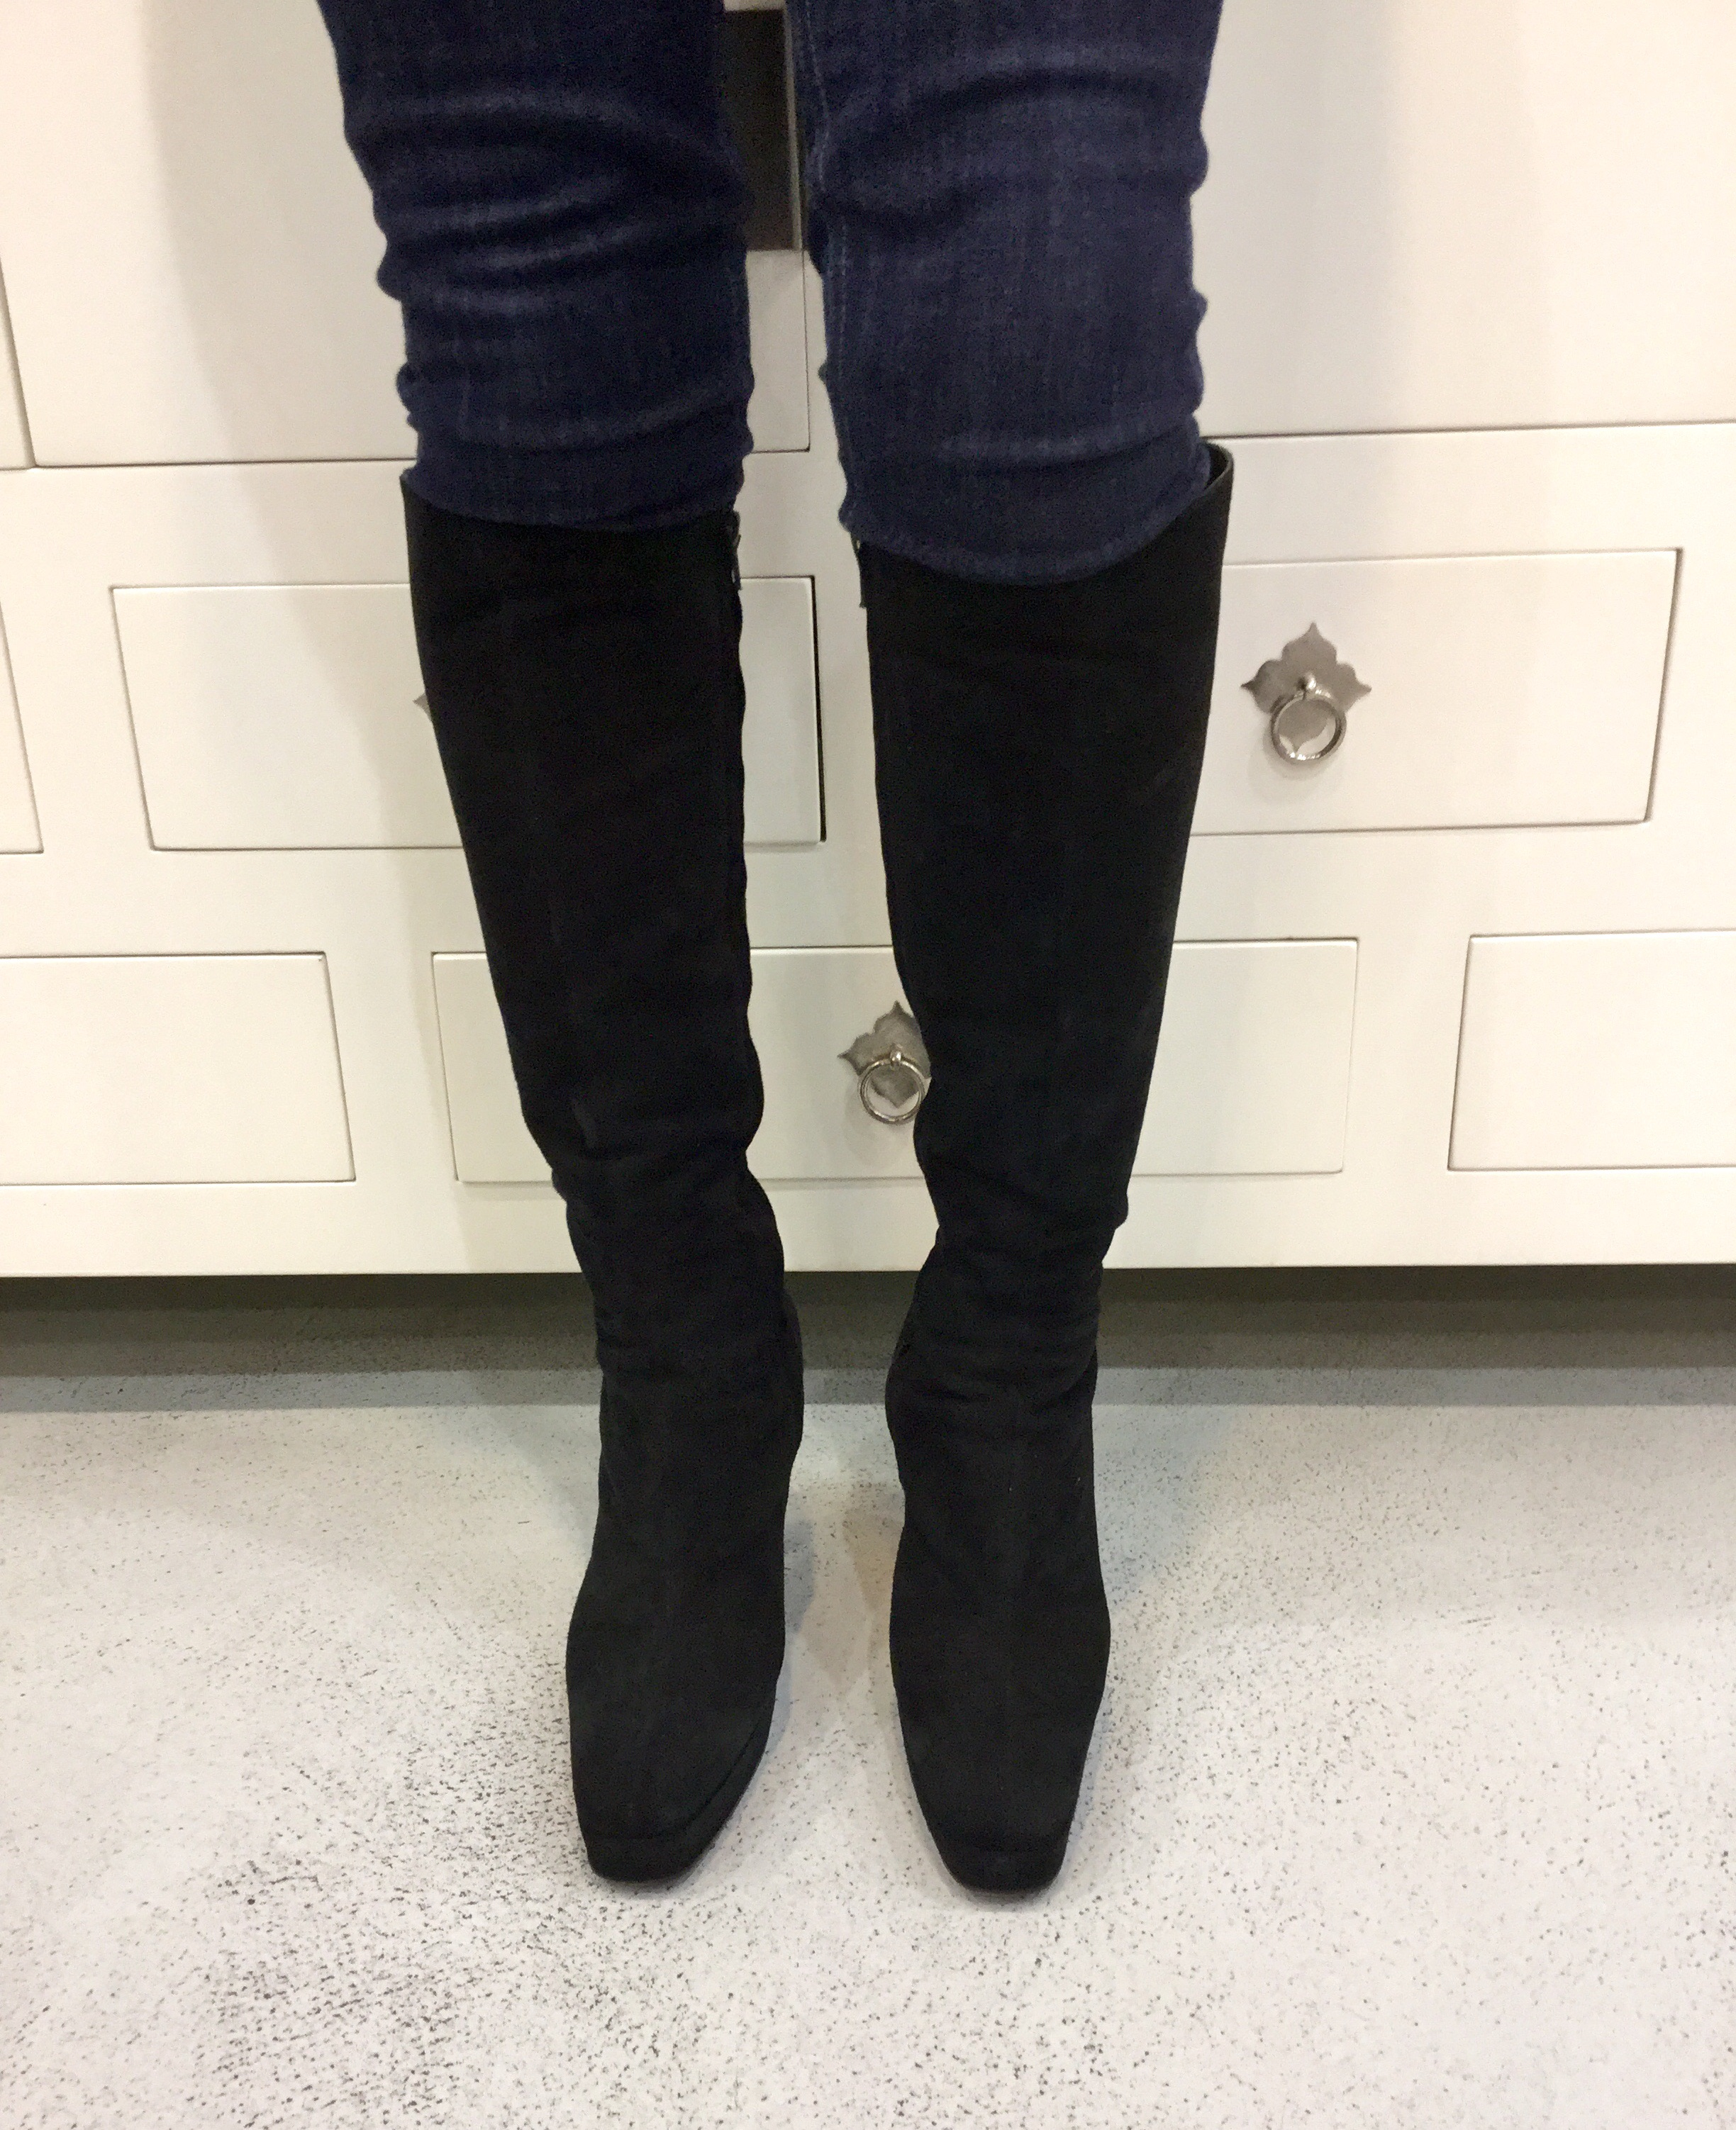 zPre-Owned Gucci Black Suede Tall Boots | All That & More Boutique